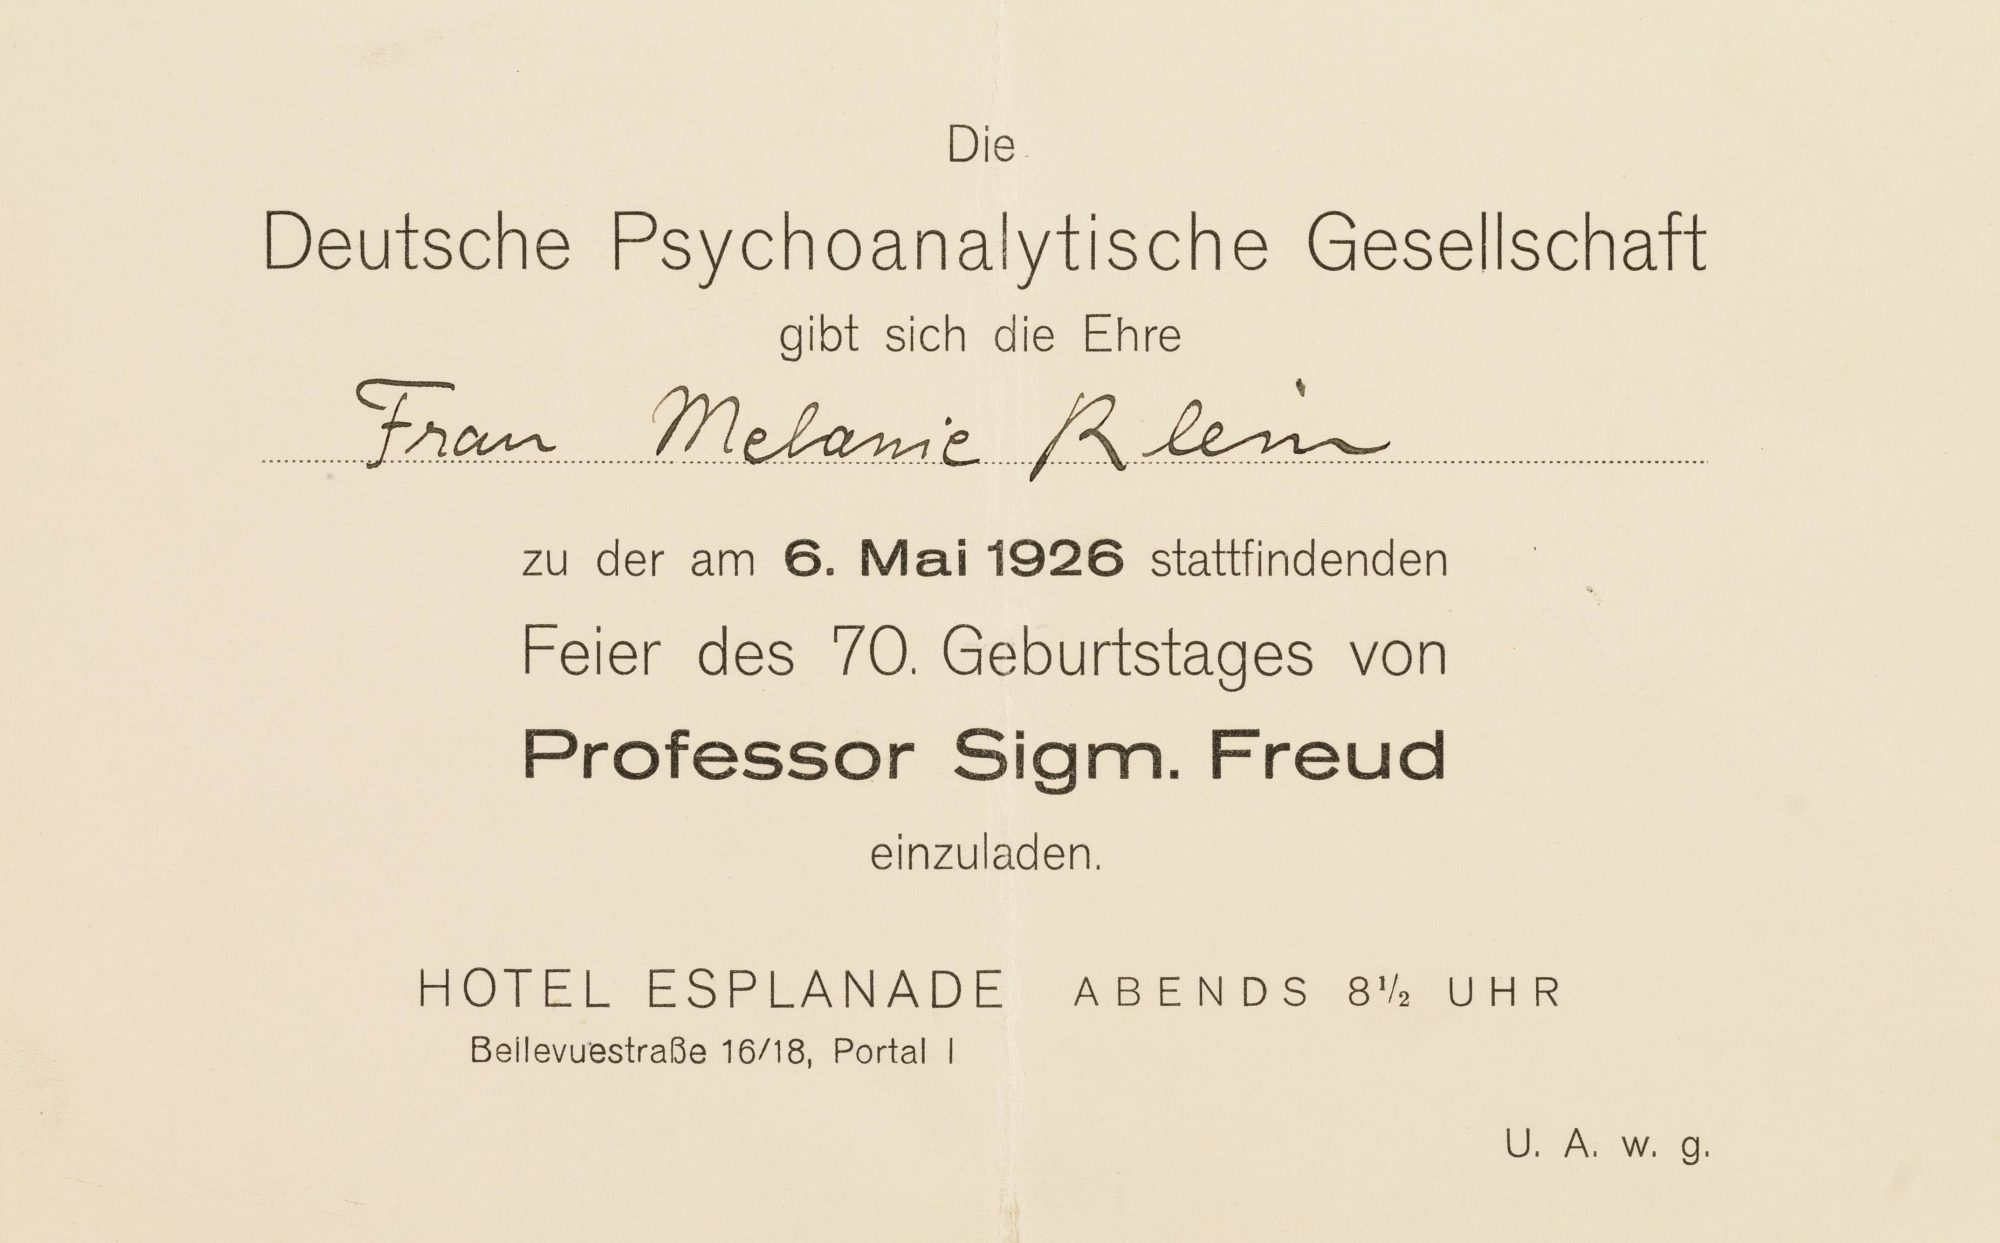 Klein's invitation to Sigmund Freud's 70th birthday party in Berlin